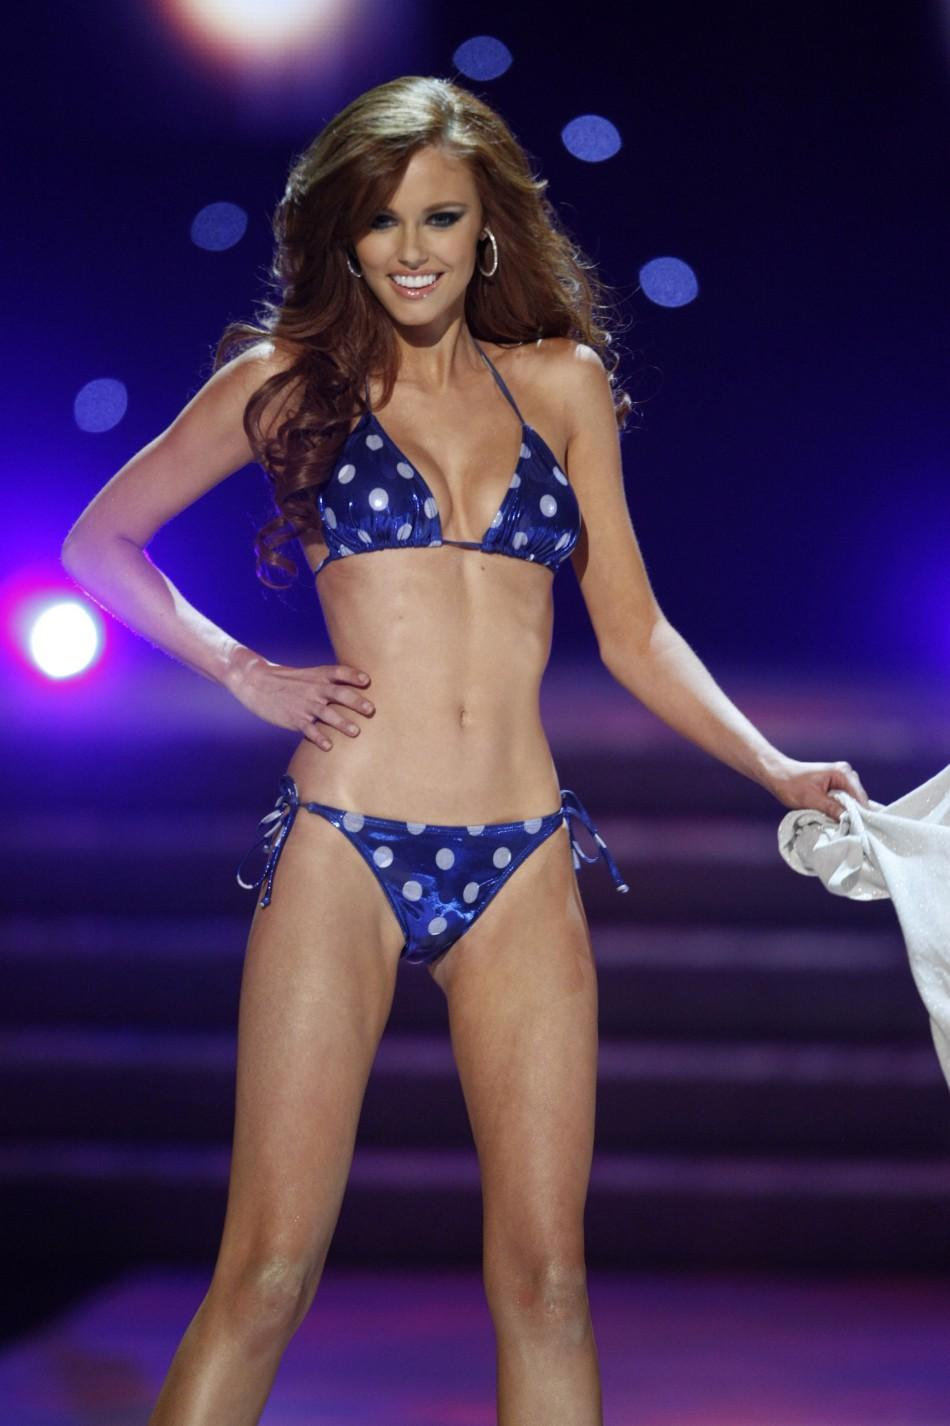 Miss California Alyssa Campanella